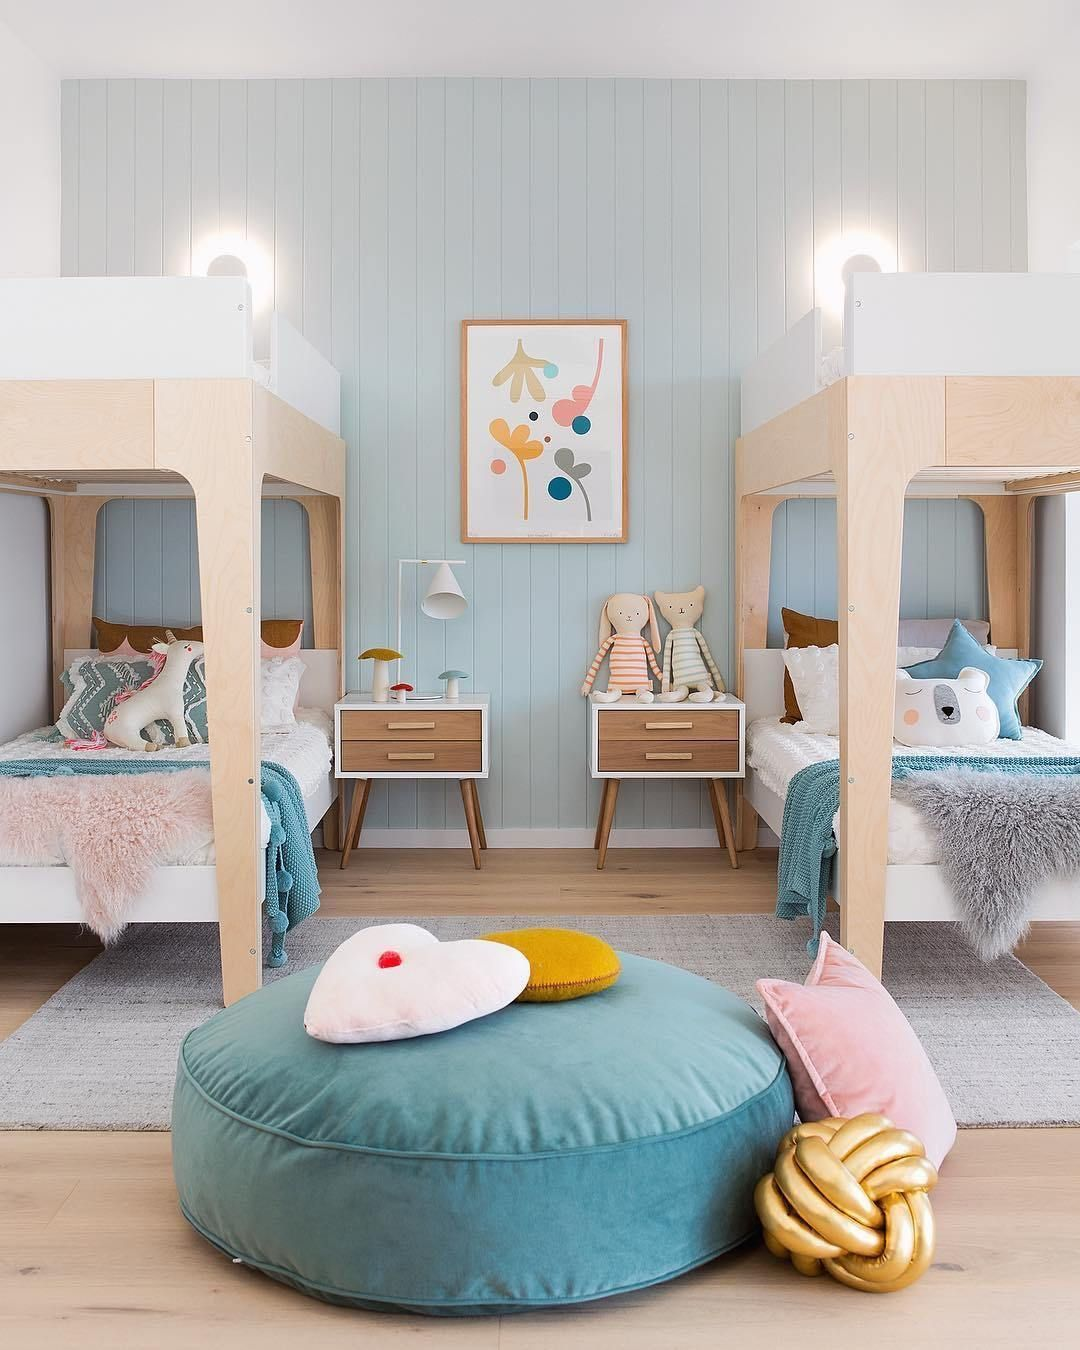 Cute Wall Decor Applying Kids Room If You Are Planning To